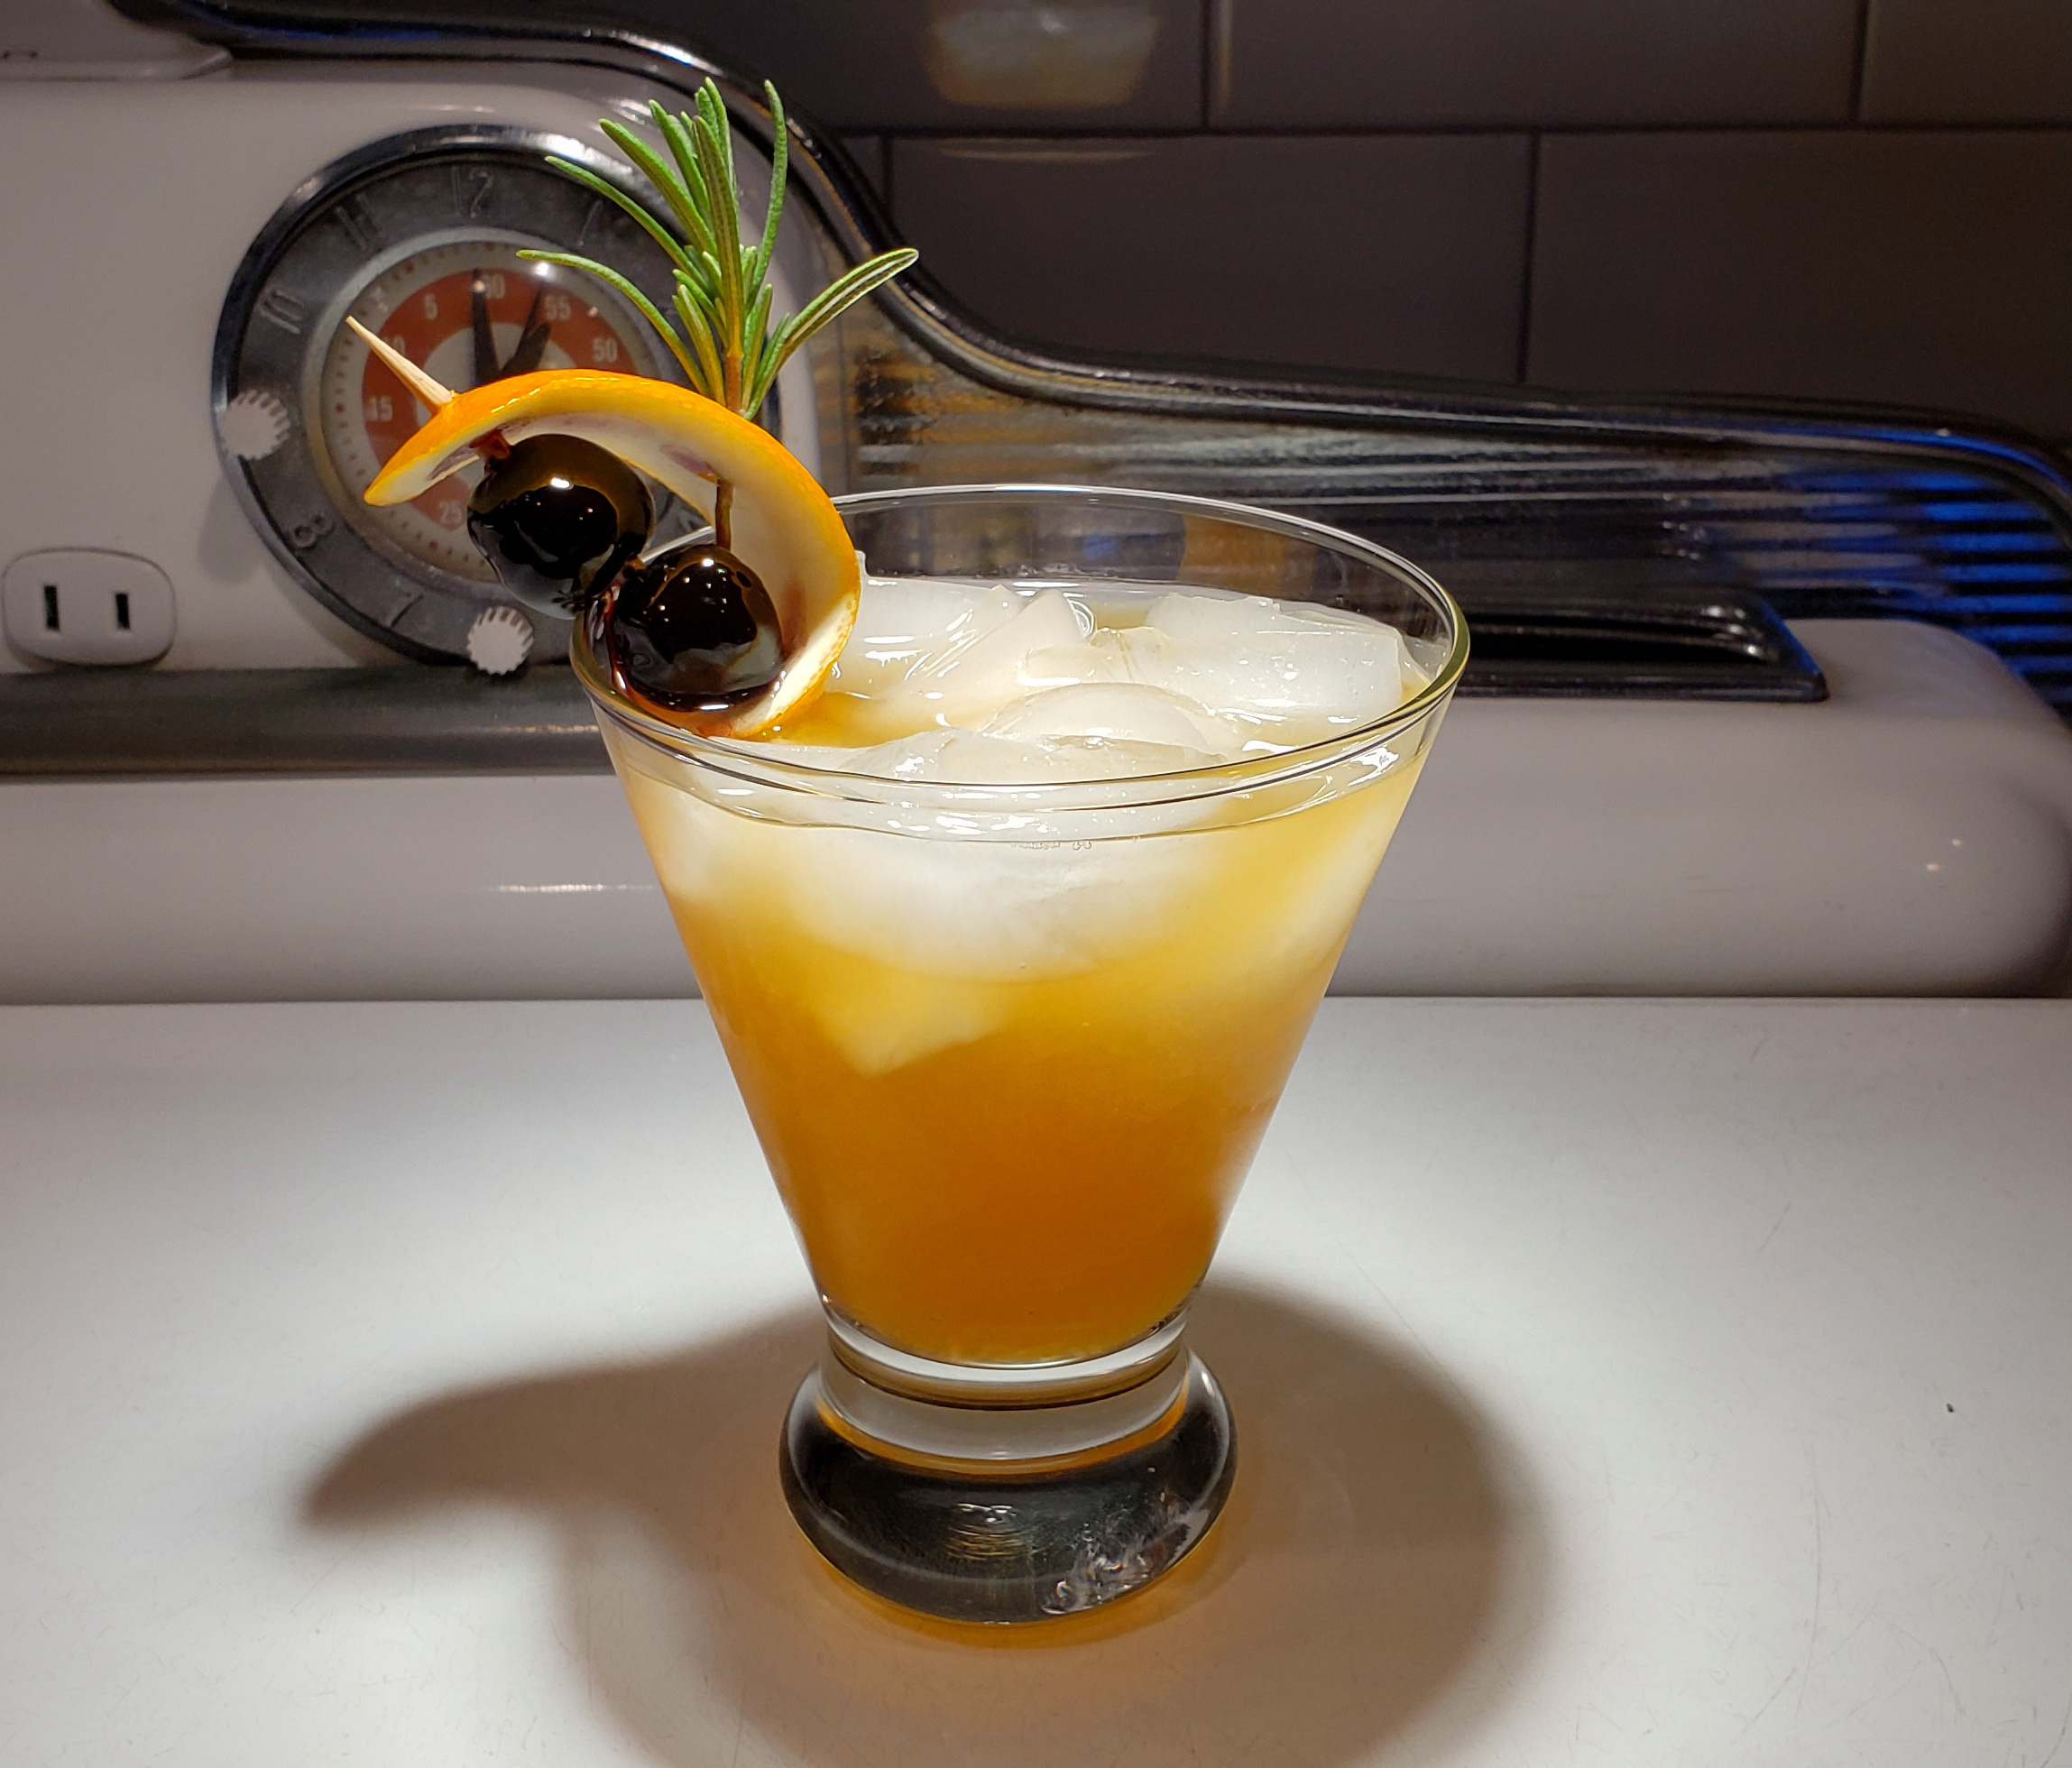 The Eagle's Rosemary Sour, photo by Michael Bonin